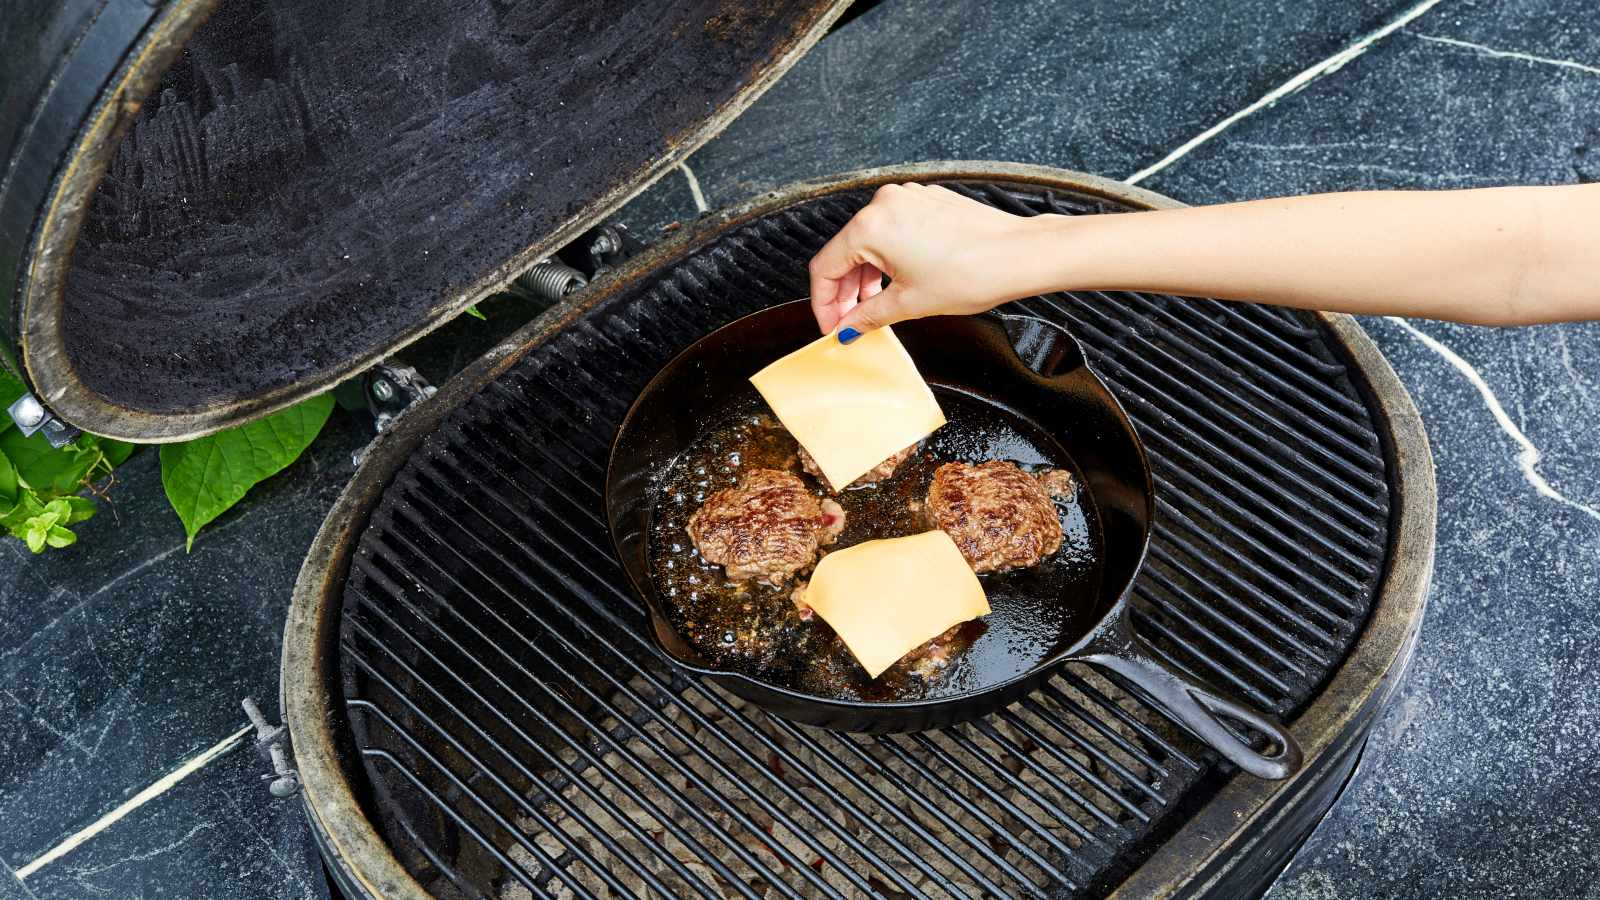 The best way to grill a burger keeps it off the grate